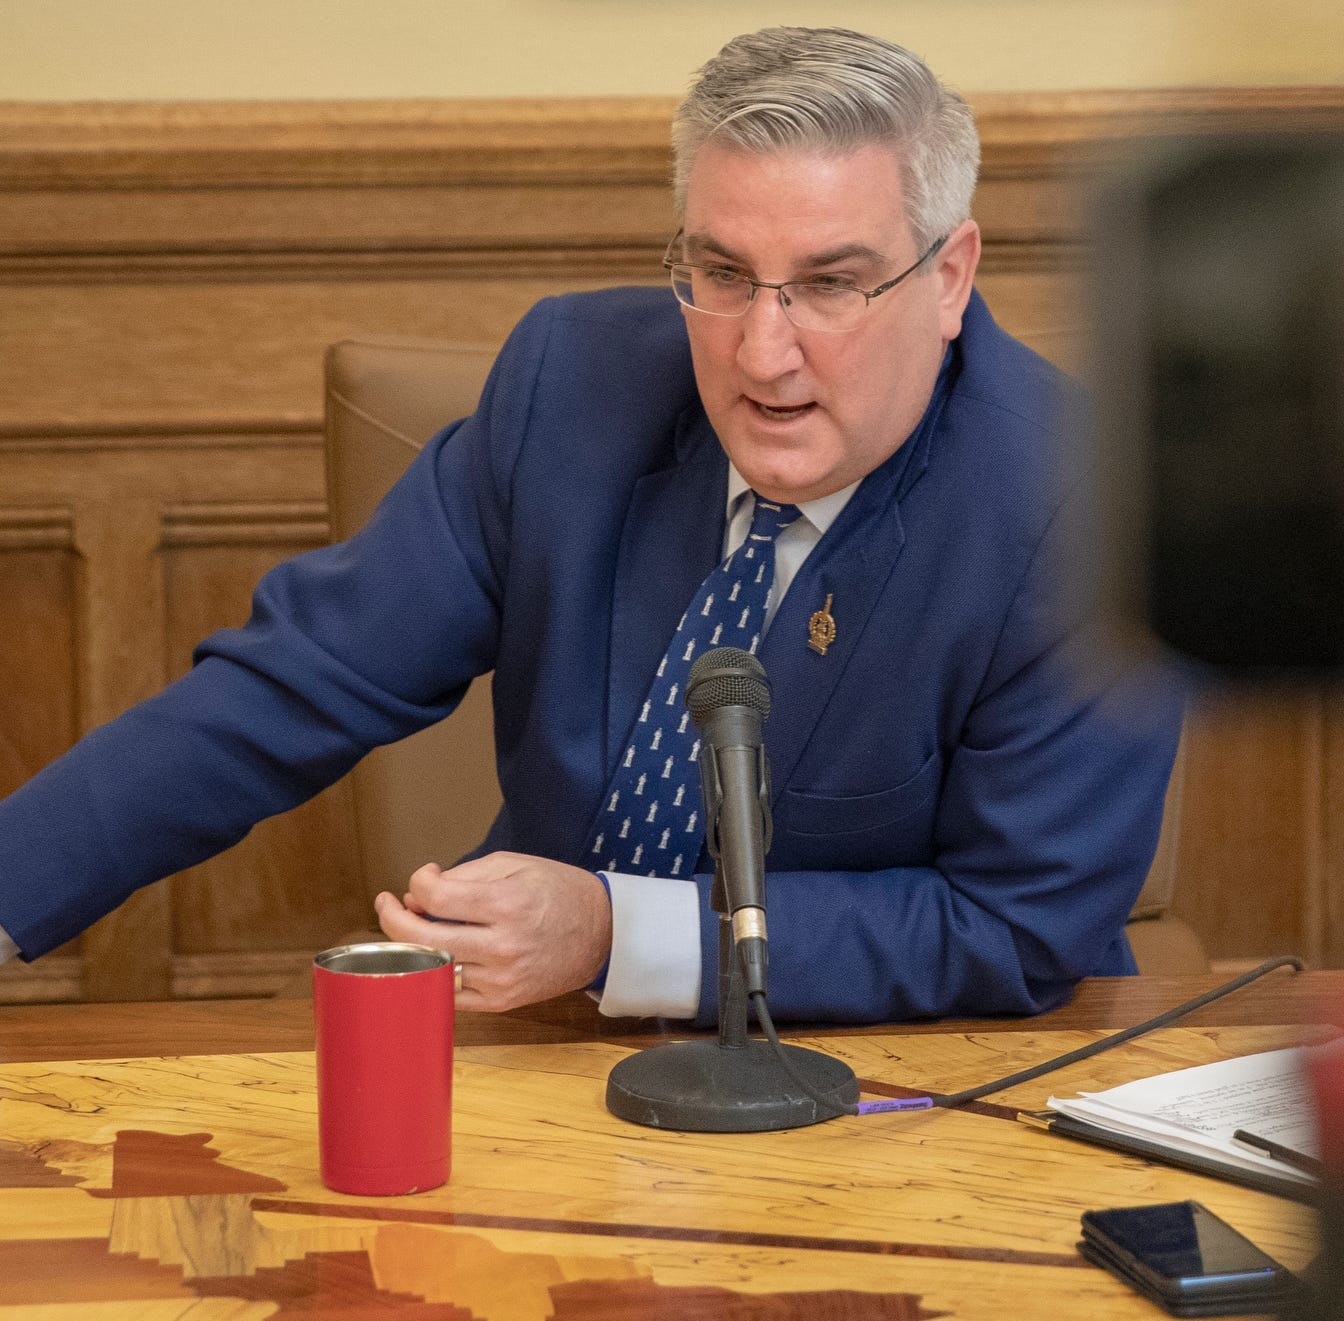 Hackney: Holcomb finally shows his true colors (red) in hate crimes debate